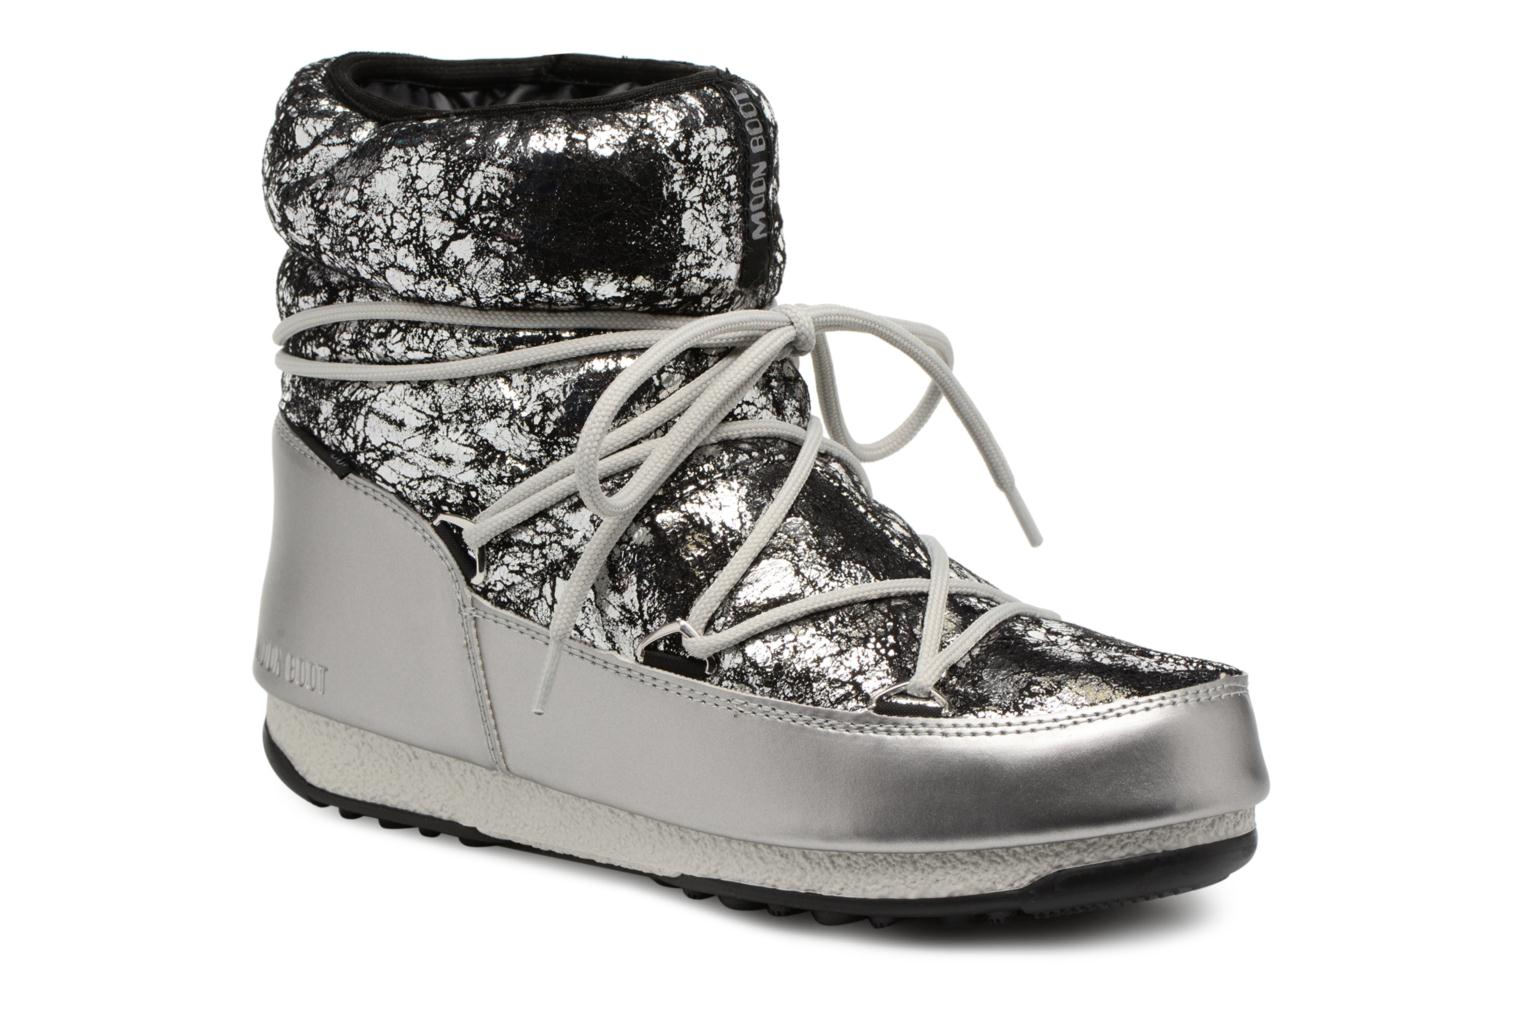 Low Crackled Crackled Moon Low Moon Boot Low Crackled Moon Boot Boot Boot Moon